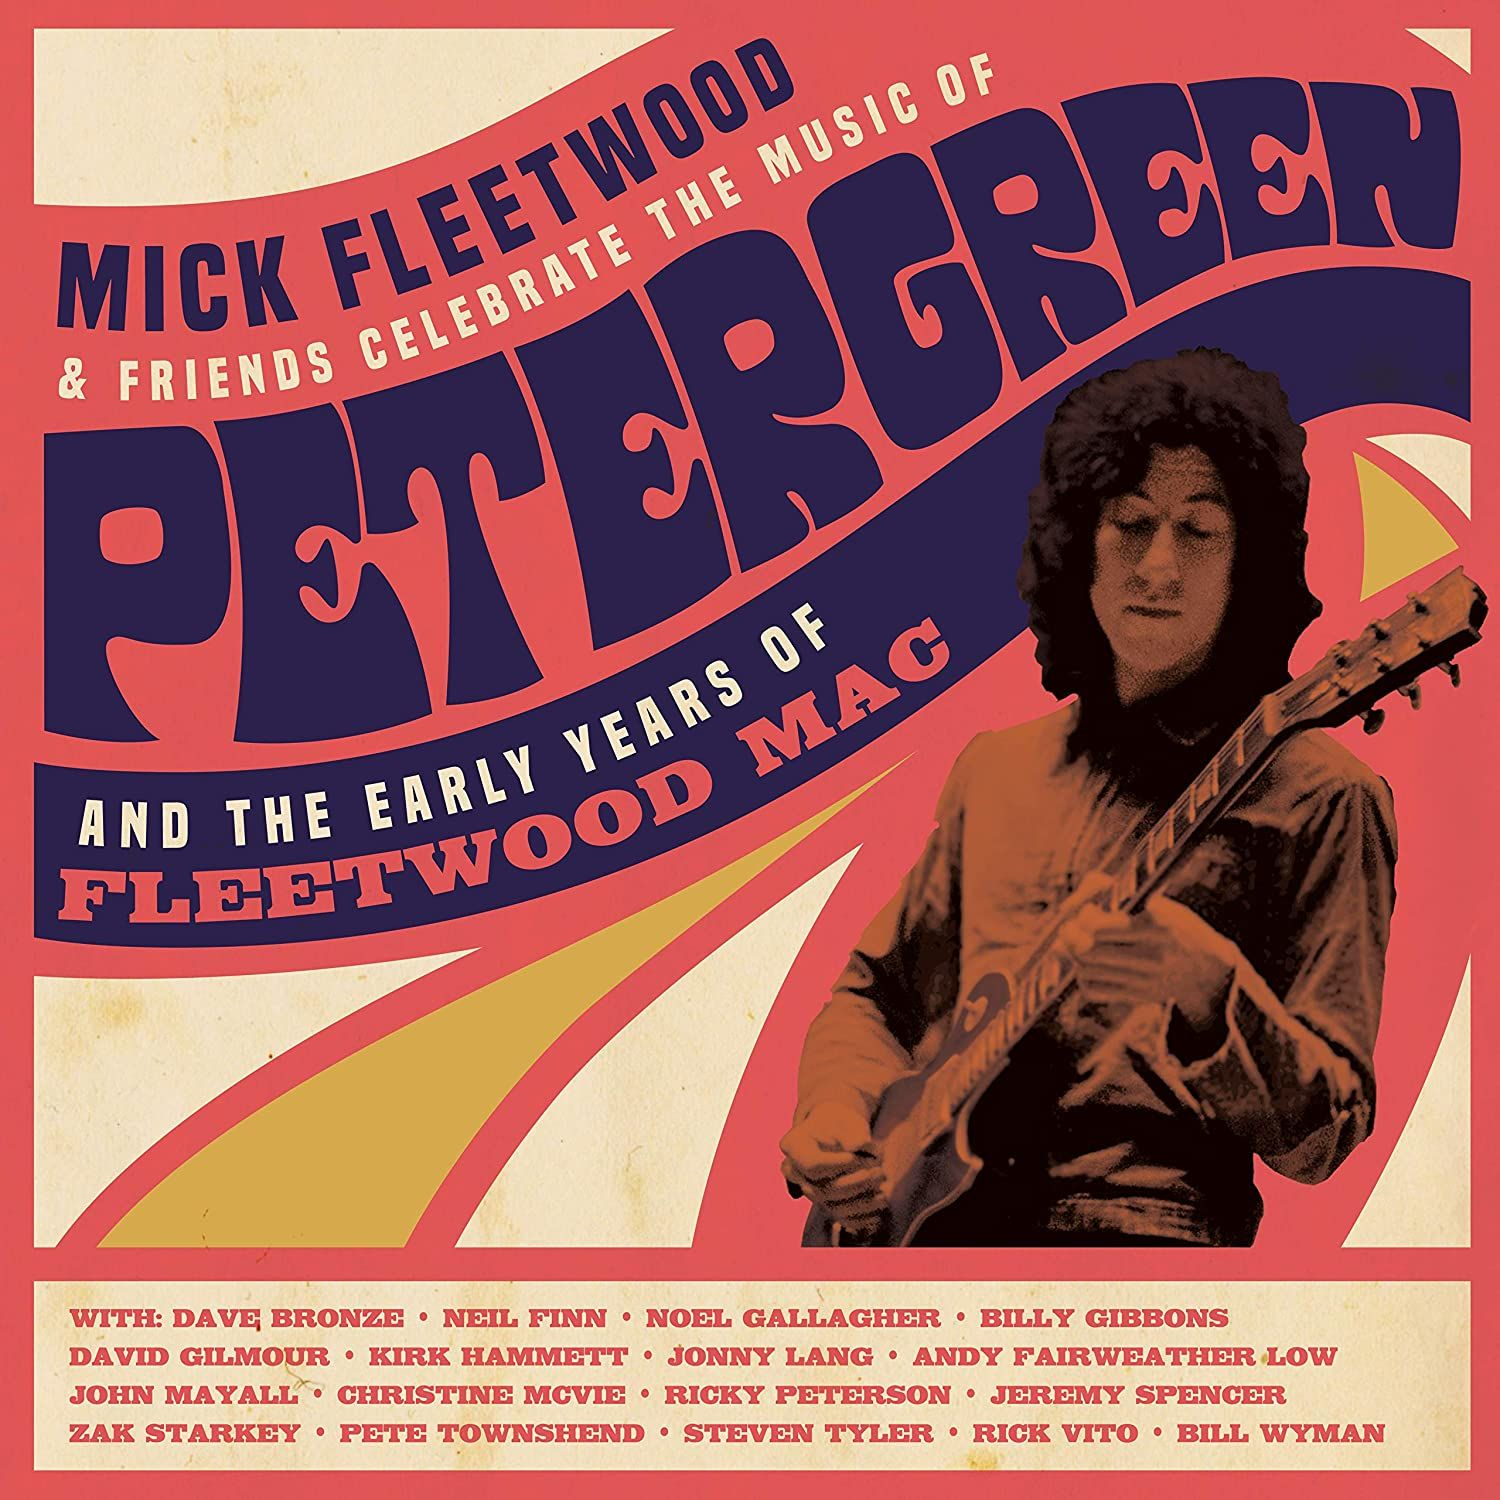 Celebrate The Music Of Peter Green And The Early Years Of Fleetwood Mac - 217315 - Diverse Vinyl